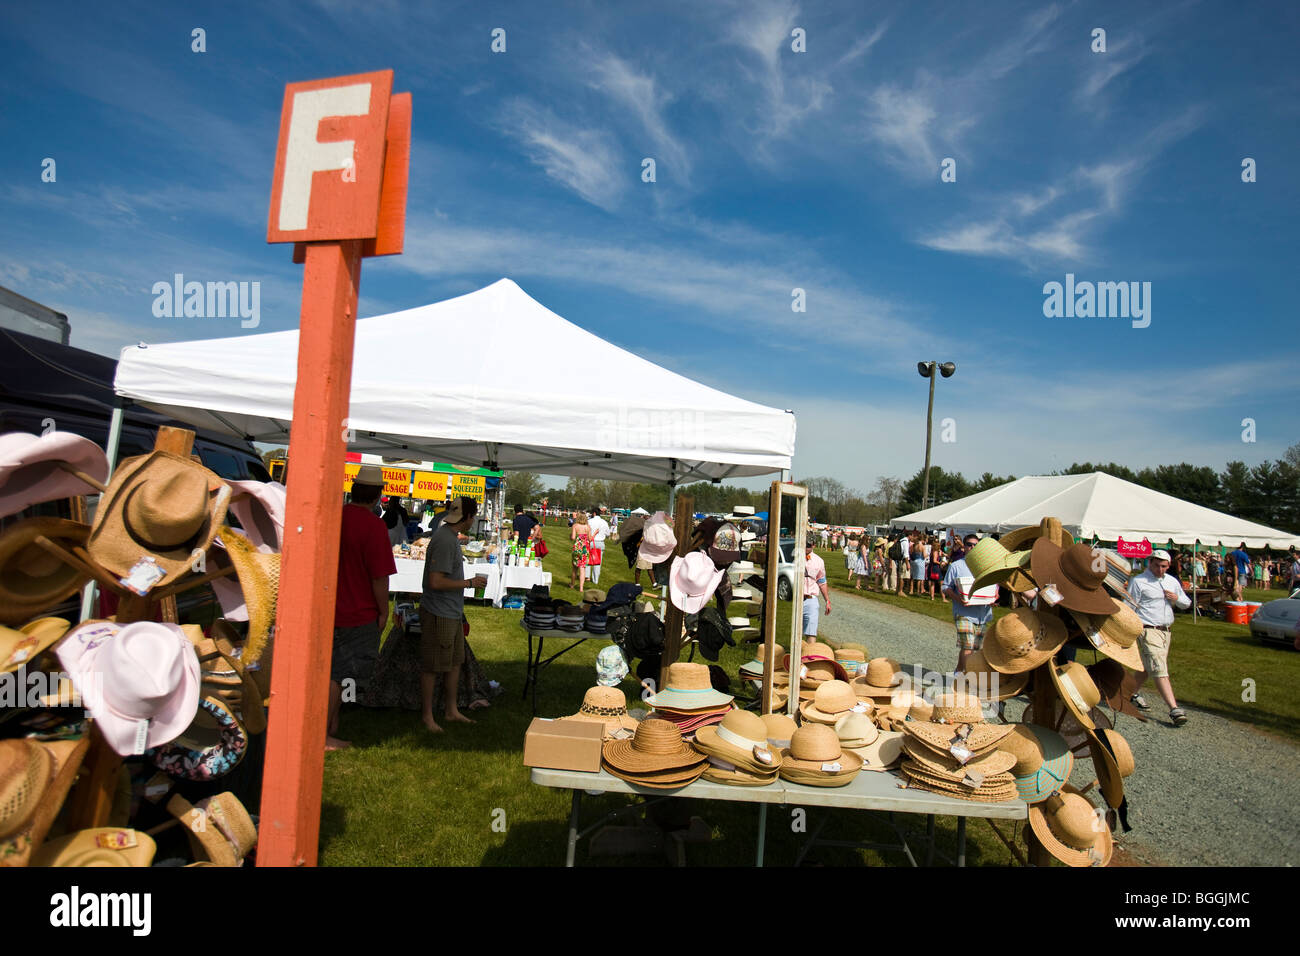 A hat vendor sells their wares outside row orange F at the Foxfield Races, Charlottesville, Virginia, USA. - Stock Image